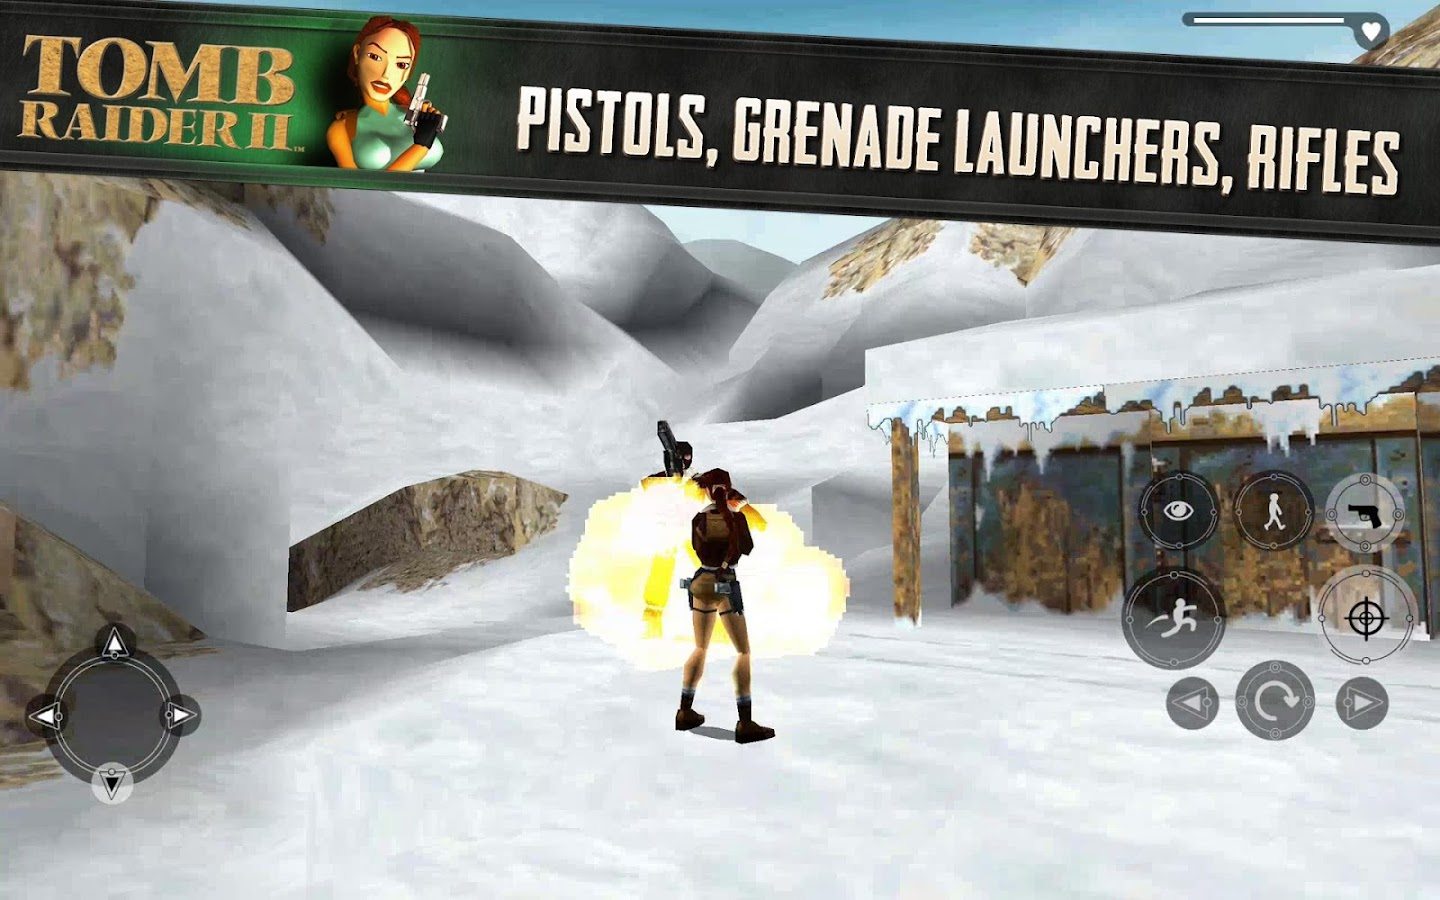 Tomb Raider II Screenshot 13